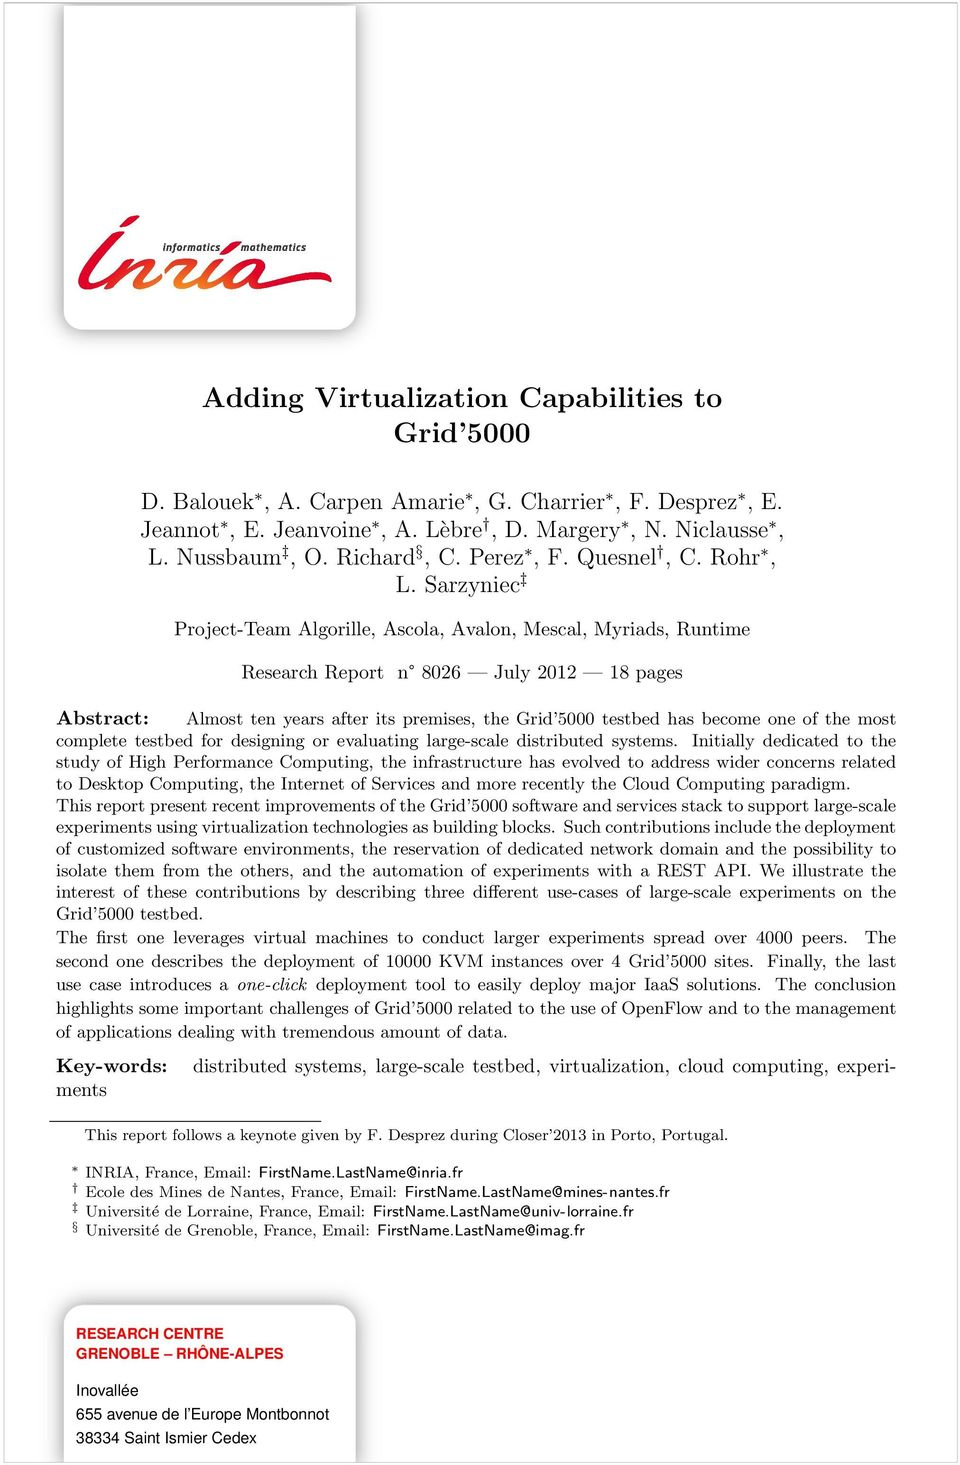 Sarzyniec Project-Team Algorille, Ascola, Avalon, Mescal, Myriads, Runtime Research Report n 8026 July 2012 18 pages Abstract: Almost ten years after its premises, the Grid 5000 testbed has become